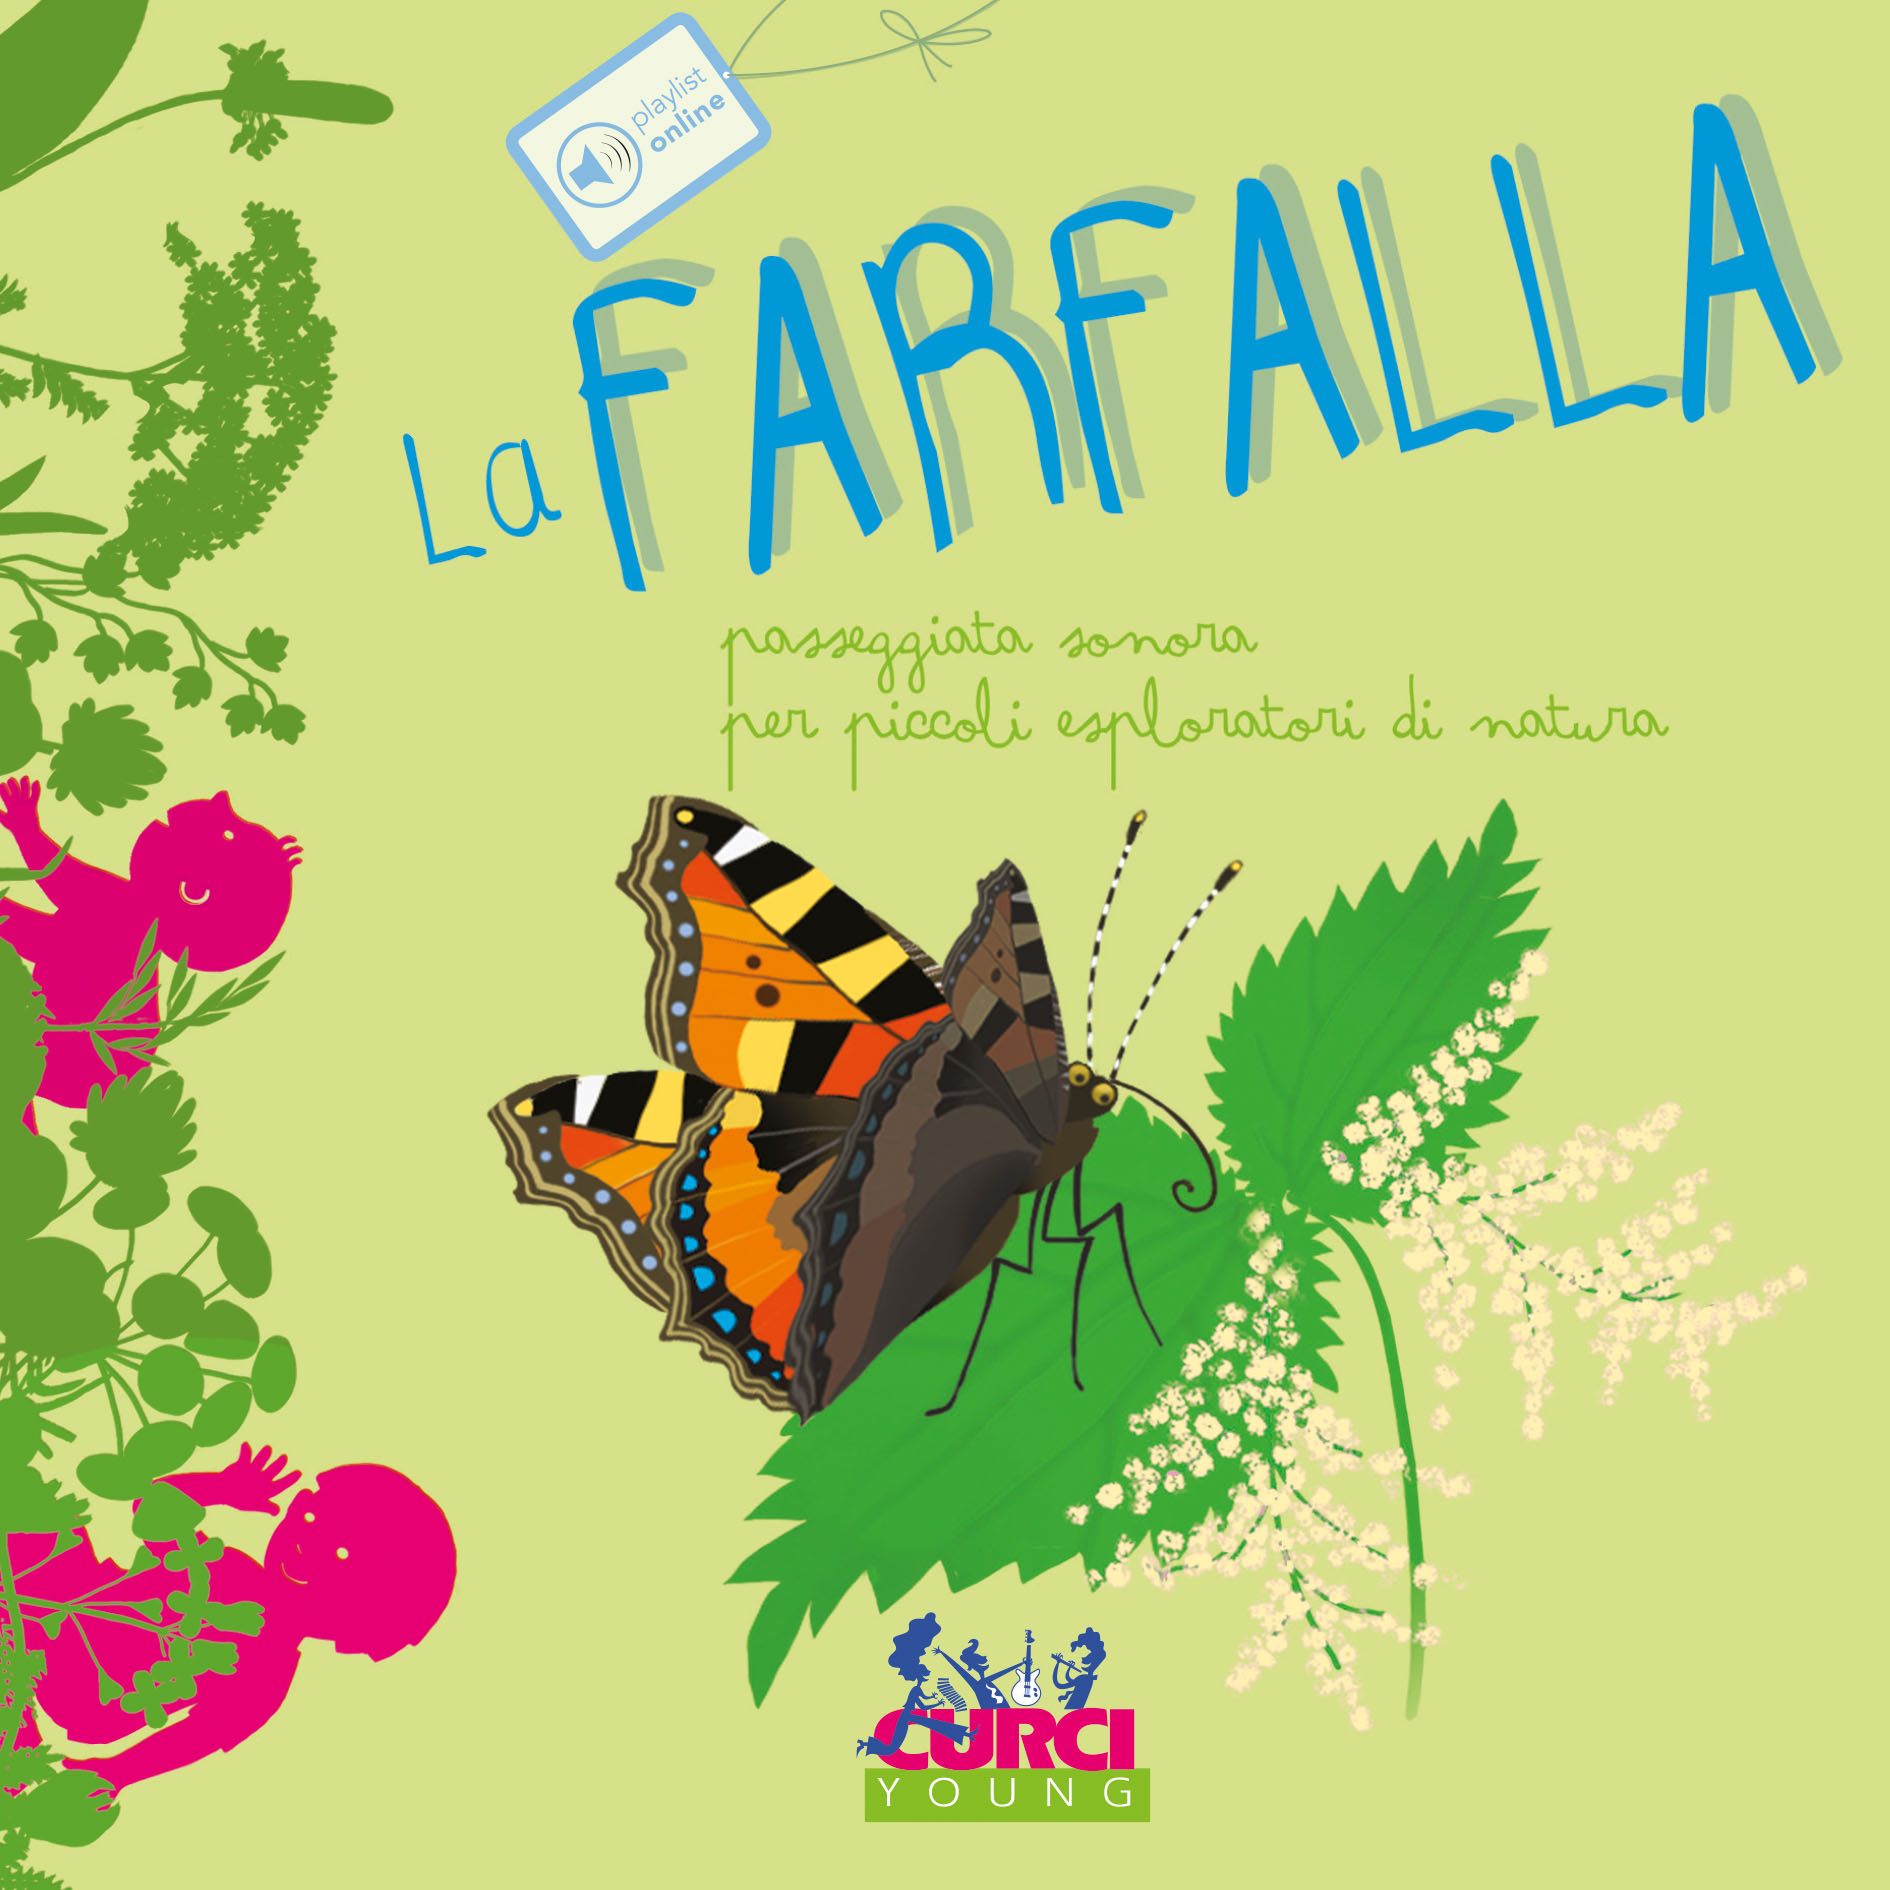 Piedi e orecchio – LA FARFALLA | Feet and Ears – THE BUTTERFLY